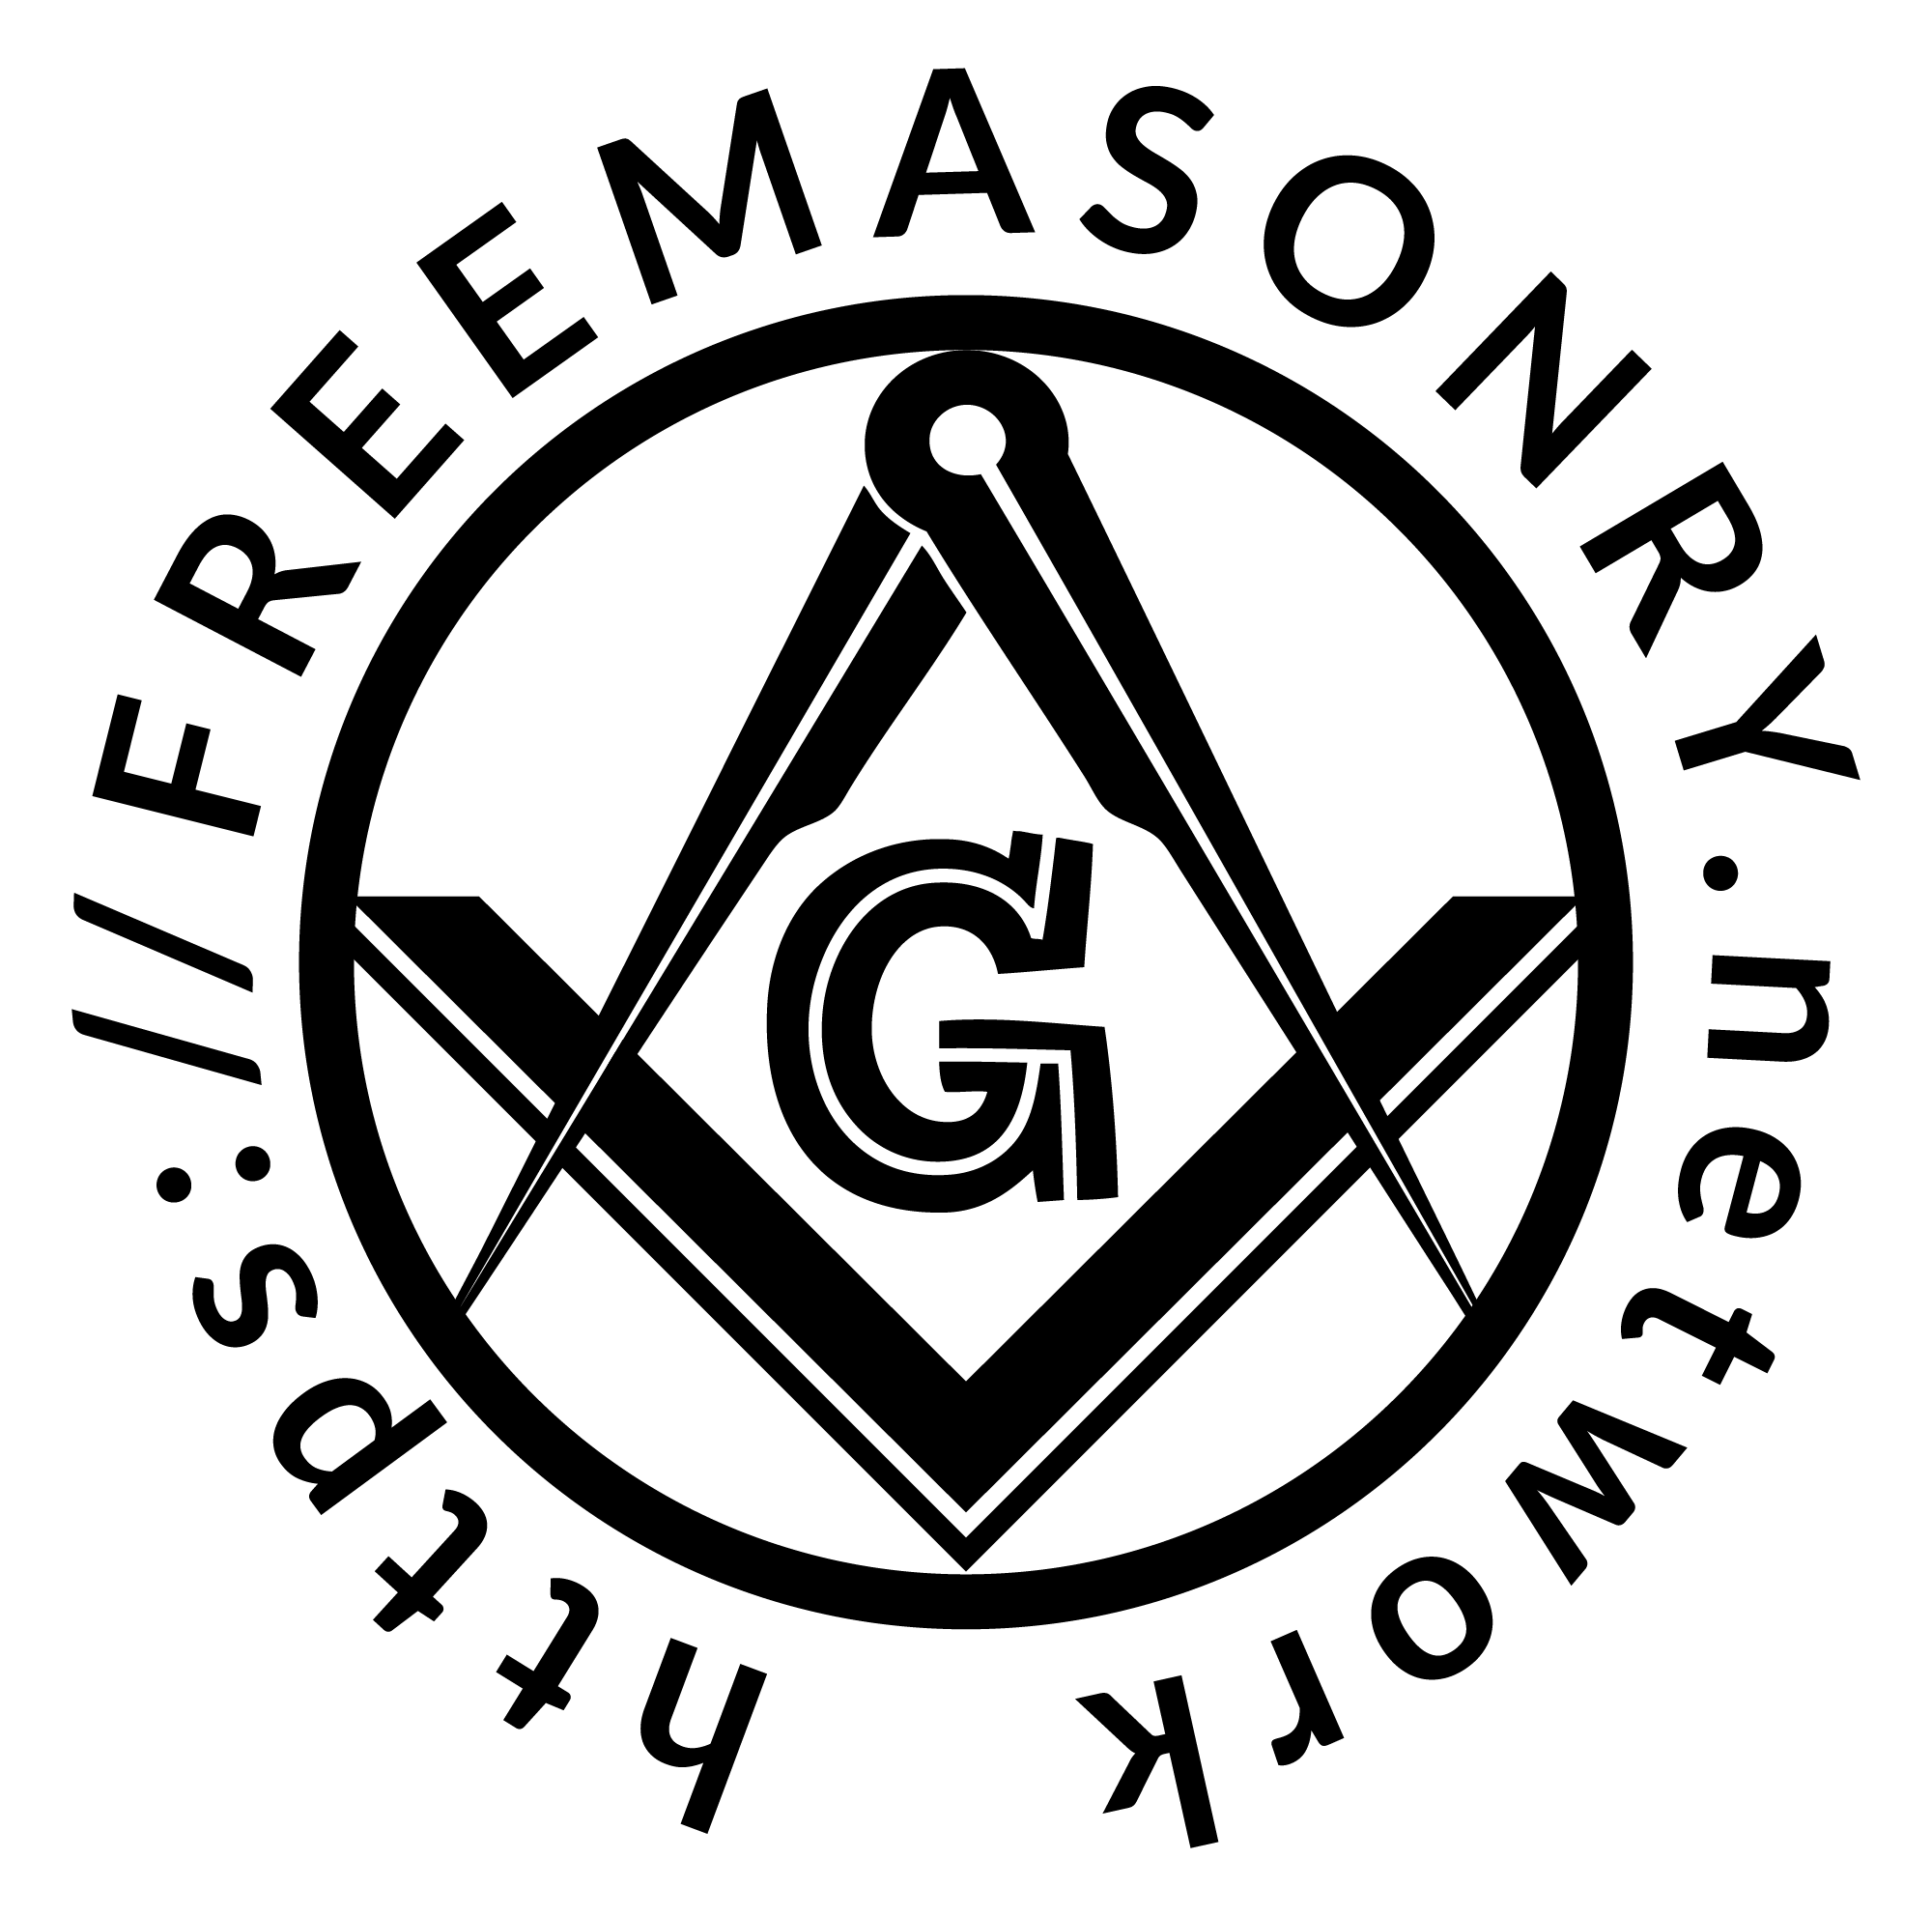 WHAT IS MASONIC OBEDIENCE